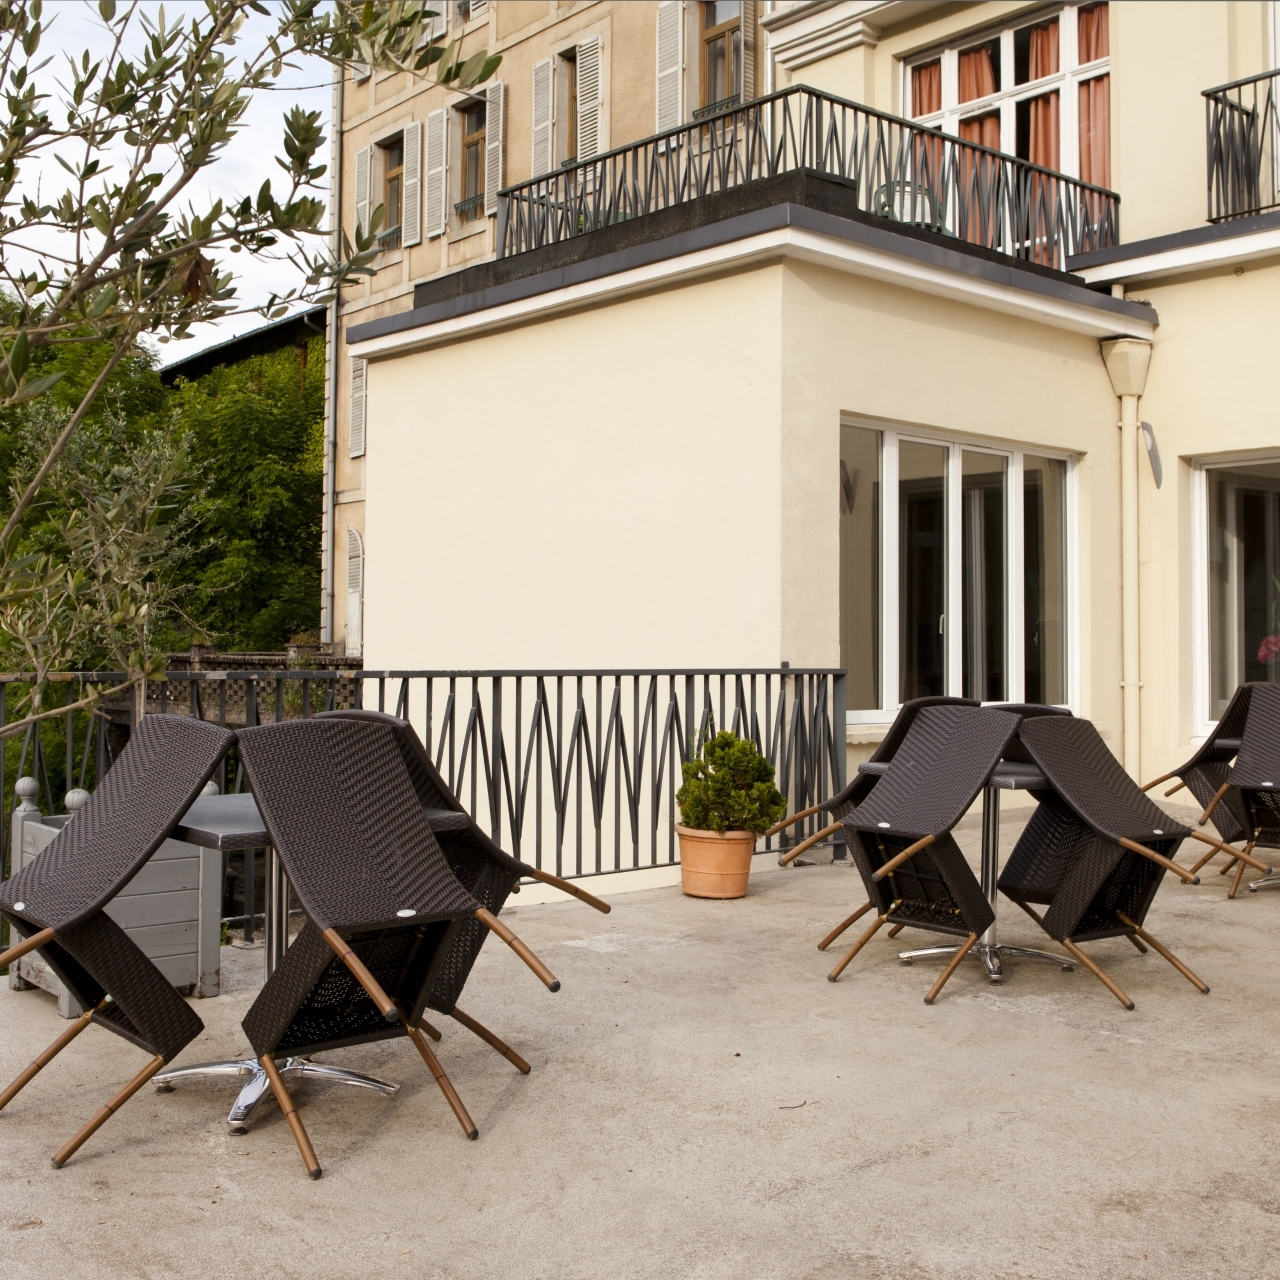 hotel le beausejour in plombieres les